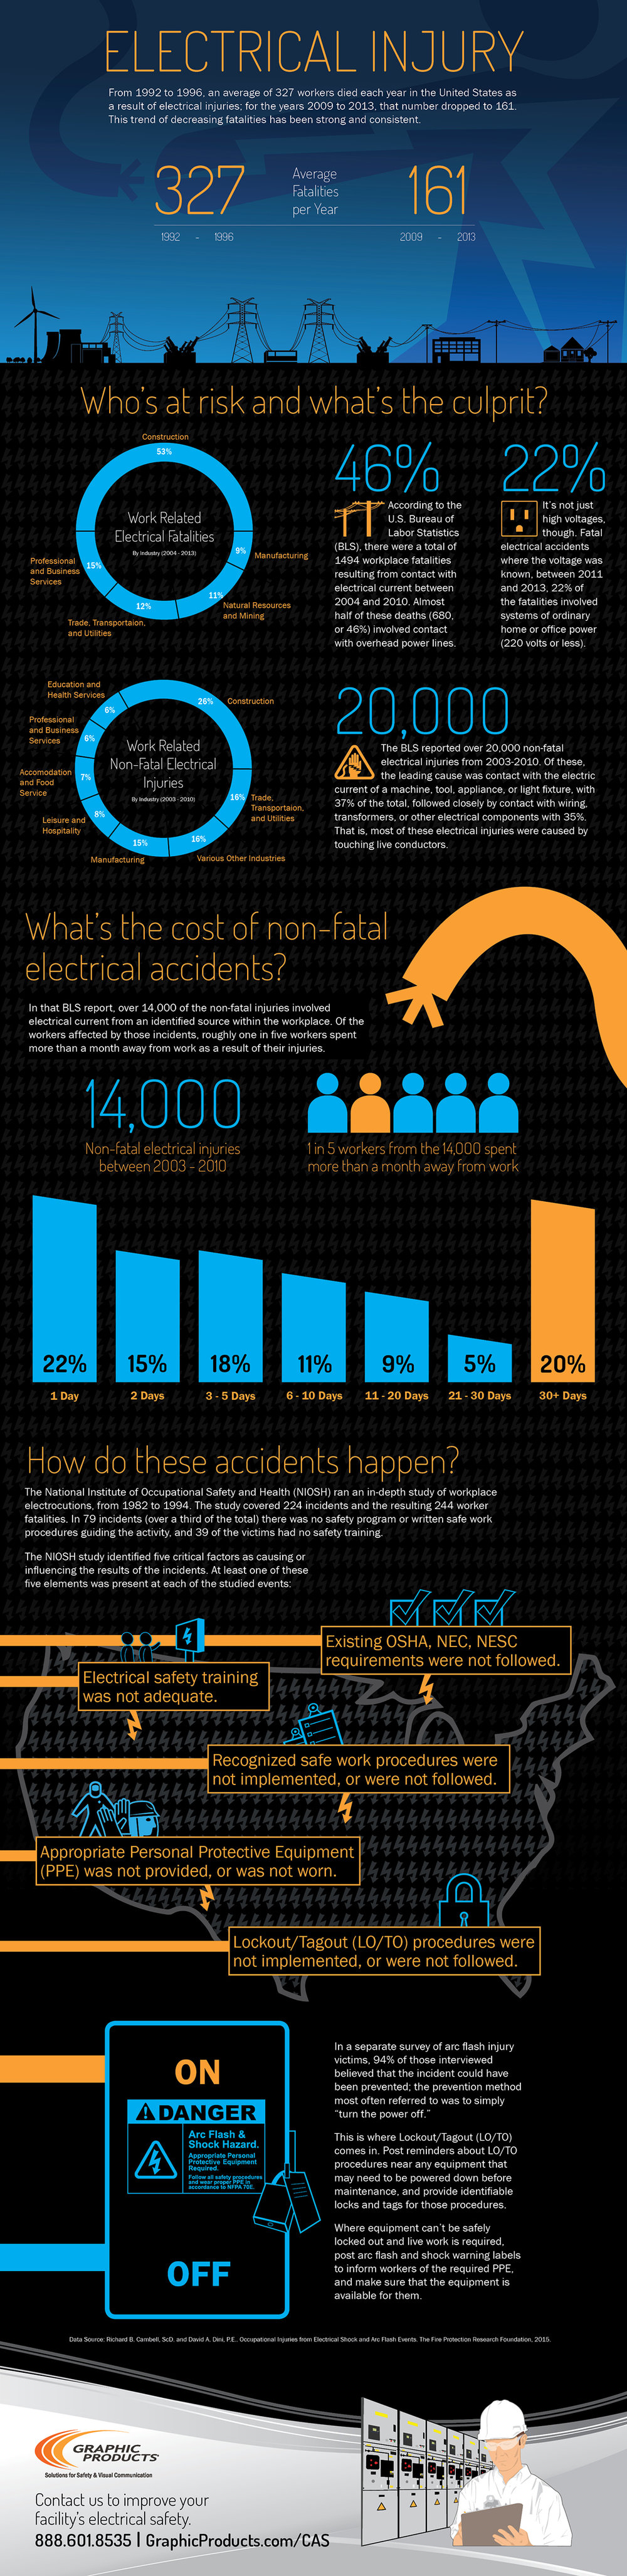 electrical-injury-2015-infographic.jpg